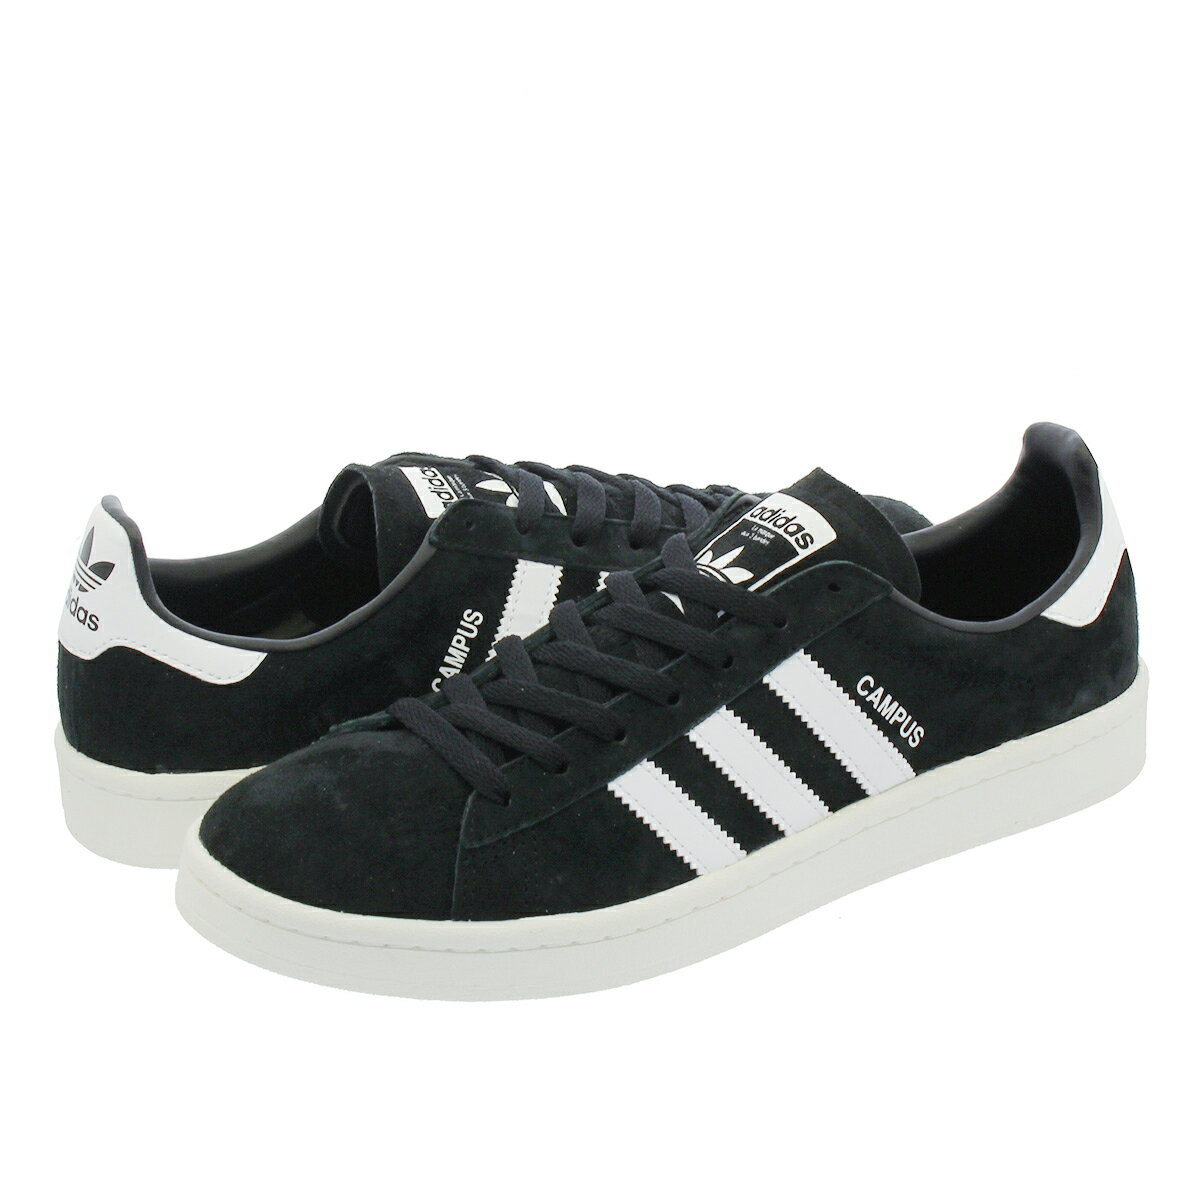 adidas CAMPUS 【adidas Originals】 アディダス キャンパス CORE BLACK/RUNNING WHITE/CHALK WHITE